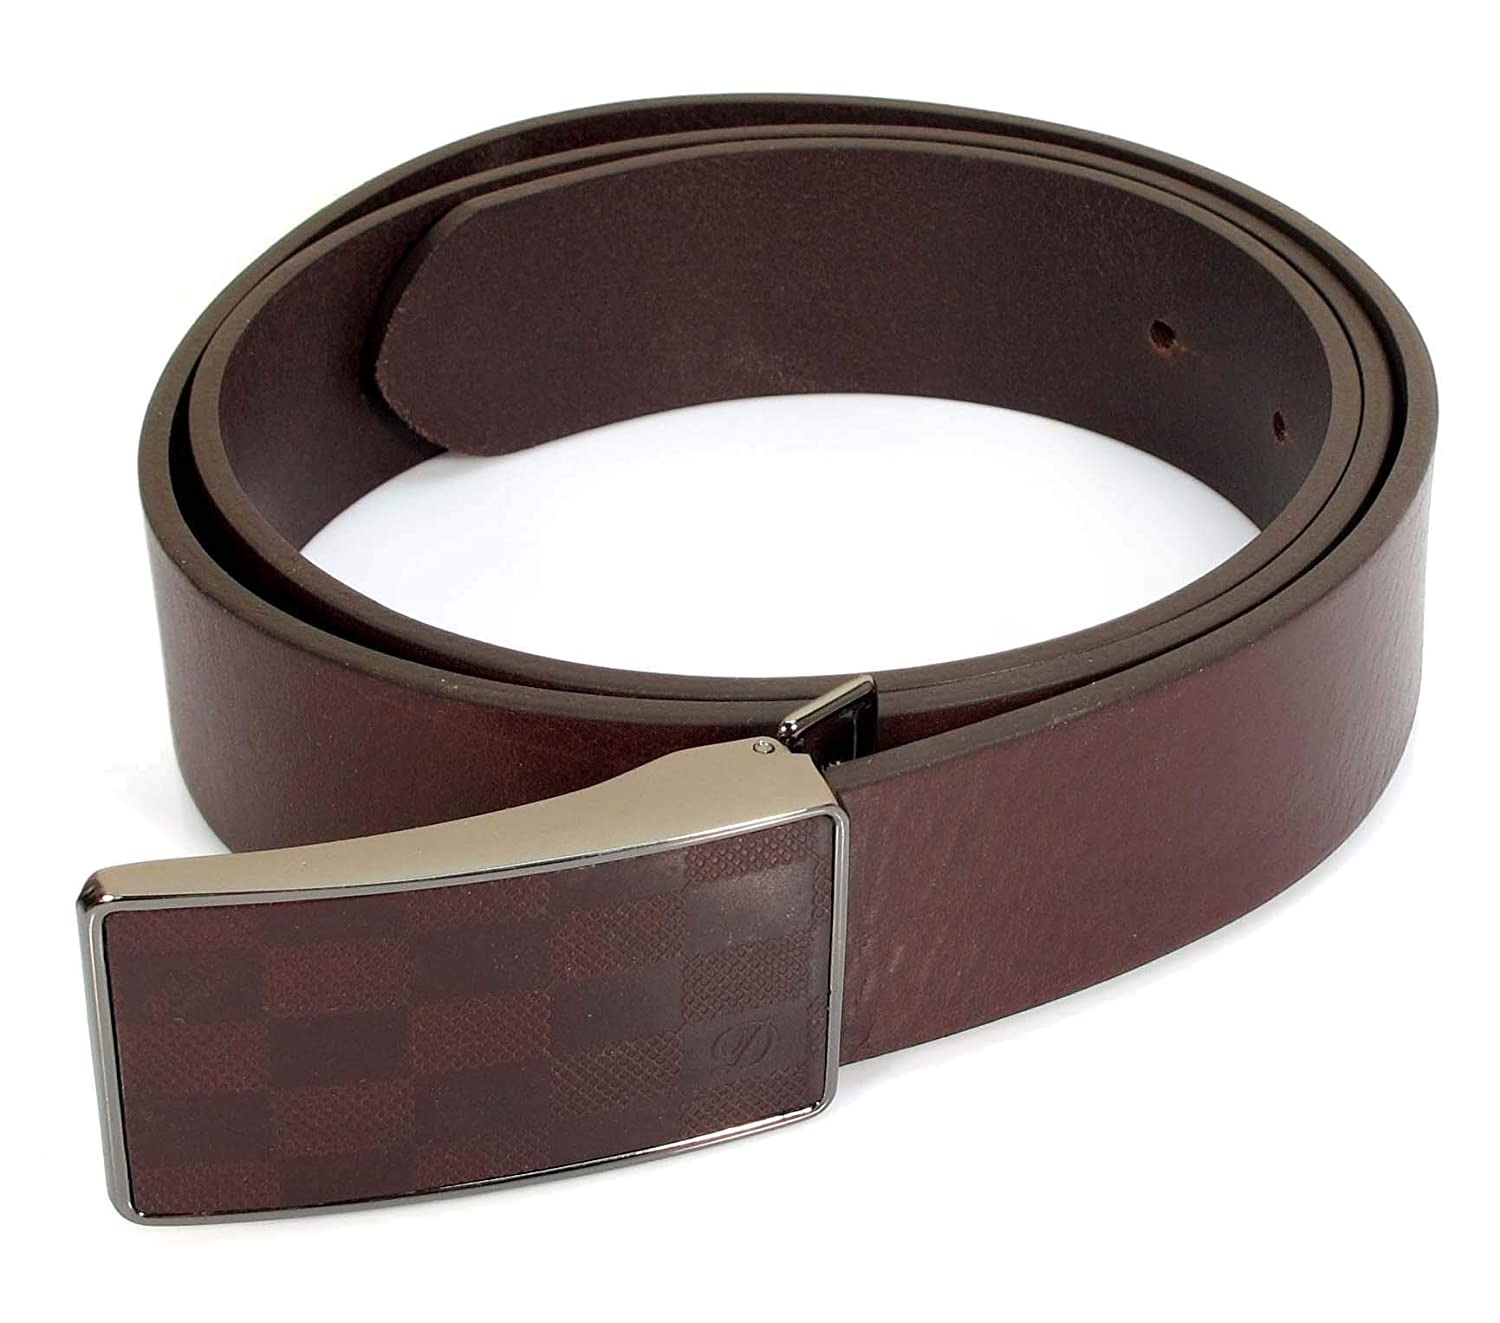 Mens Real Genuine Leather Belt Black Brown White 1.25 Wide S-L Casual Jeans CU3